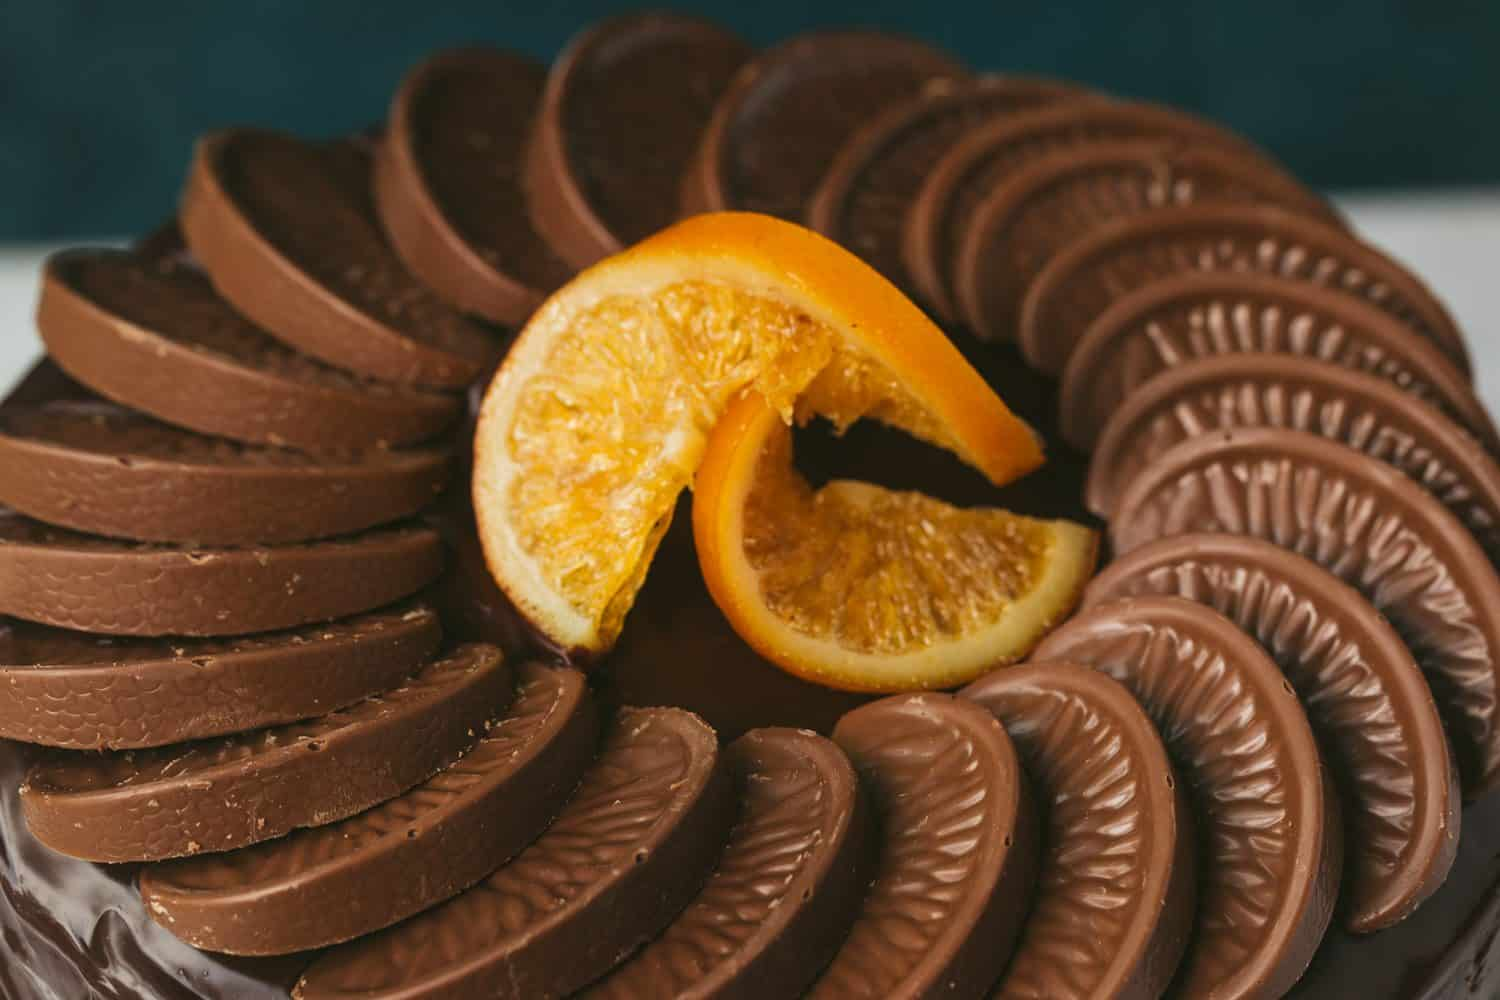 A circle of Terry's chocolate orange segments with 2 candied orange slices in the middle.